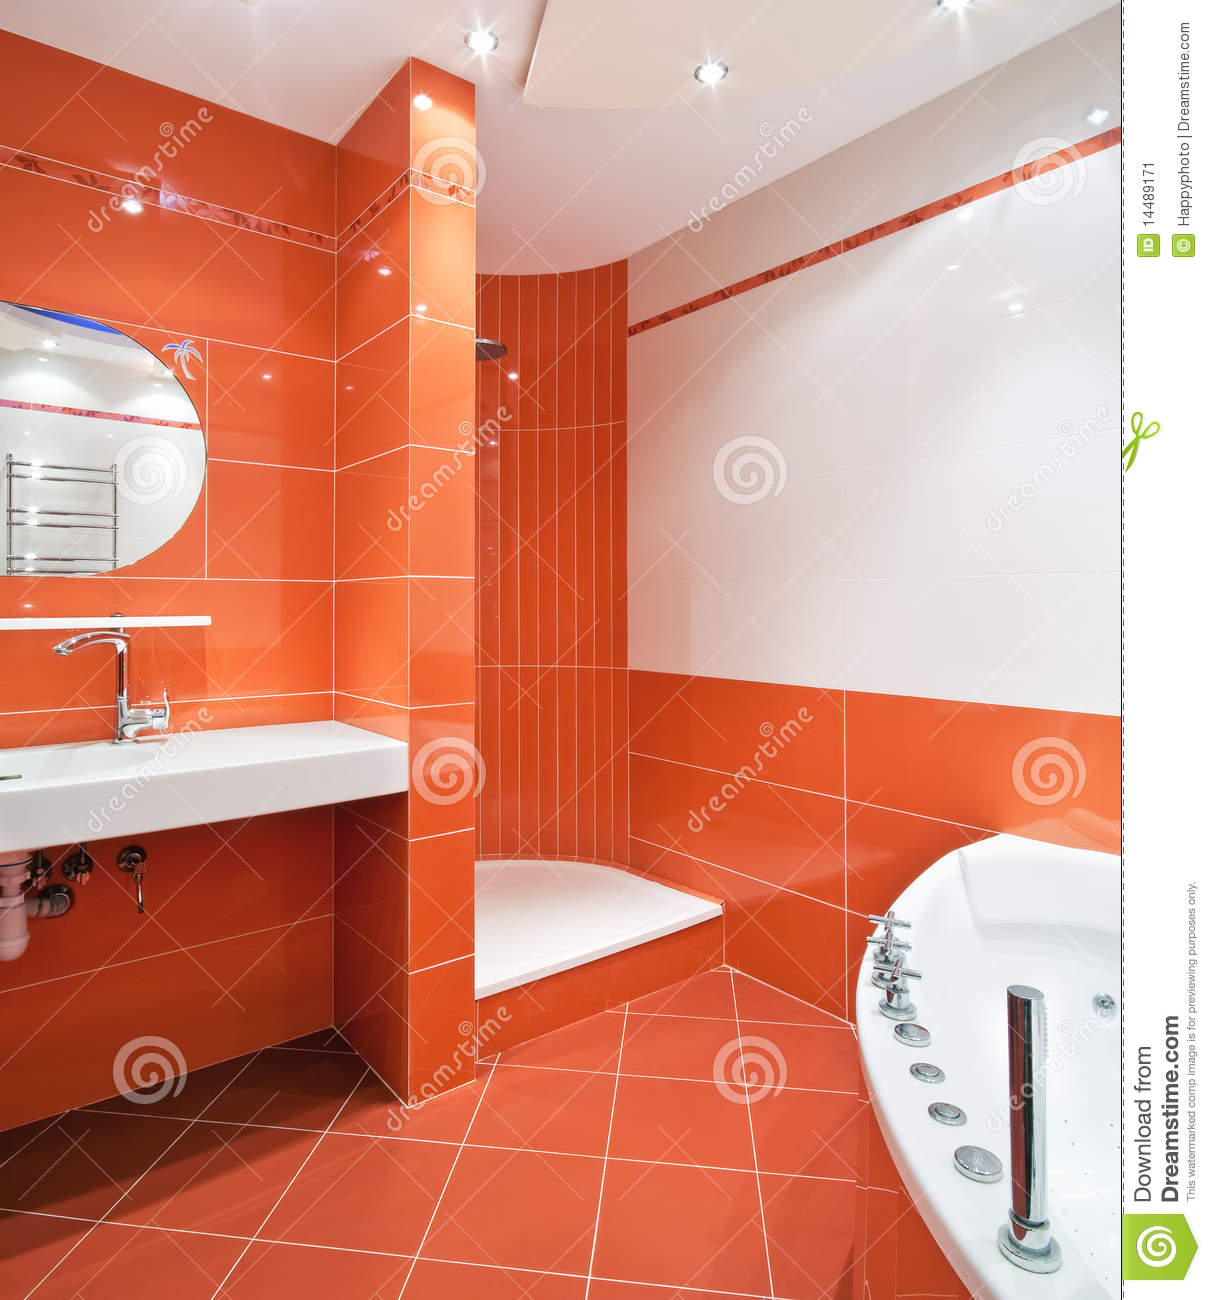 Bathroom in orange and white colors stock image image for Carrelage salle de bain orange